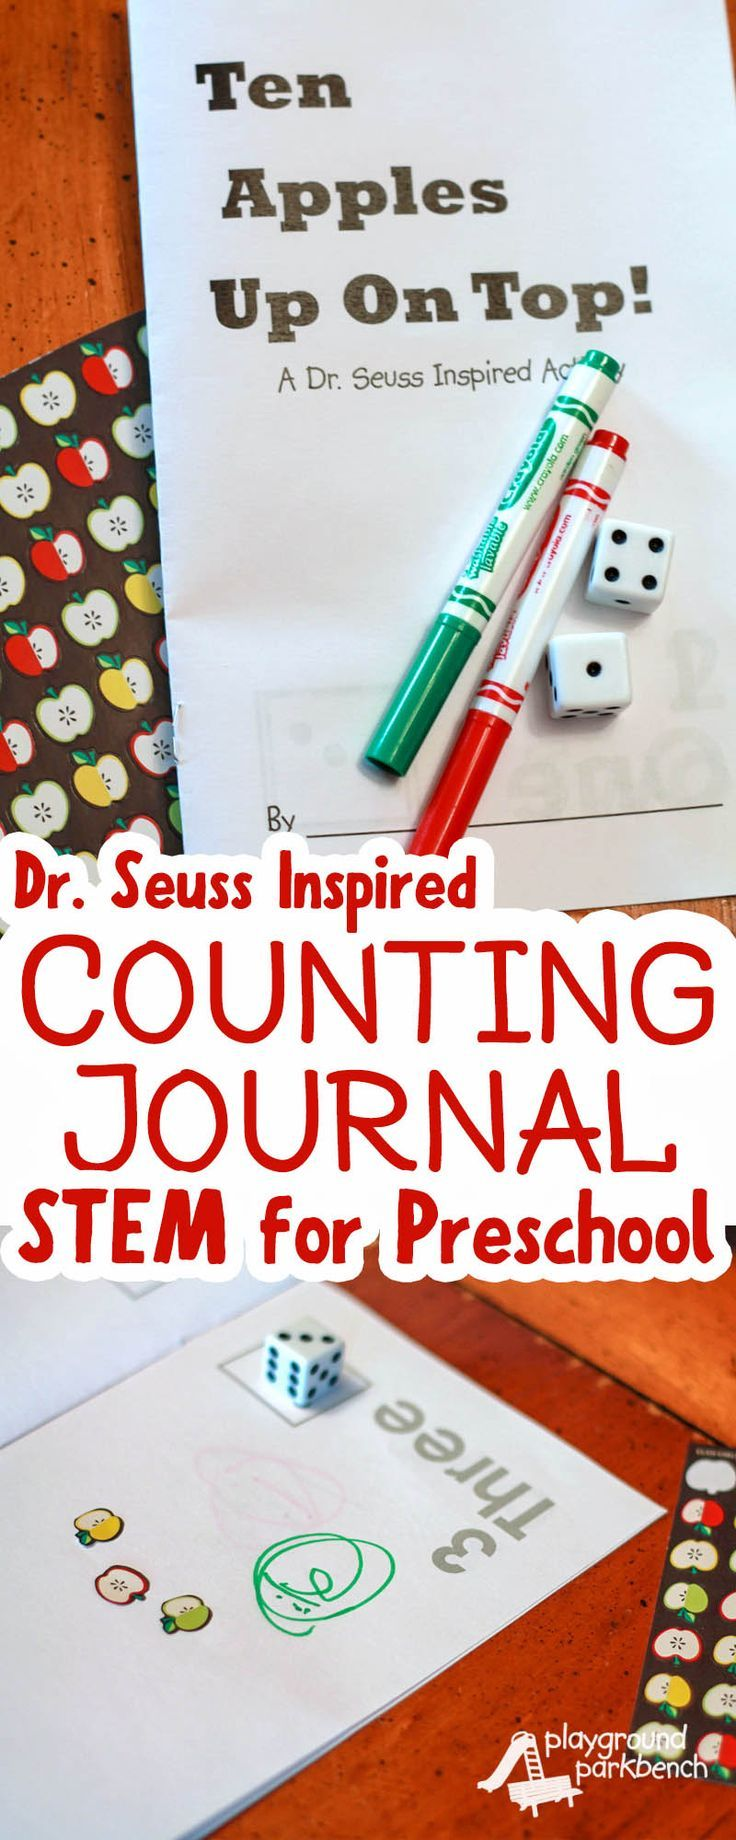 Document your child's numeracy skills with this Dr. Seuss